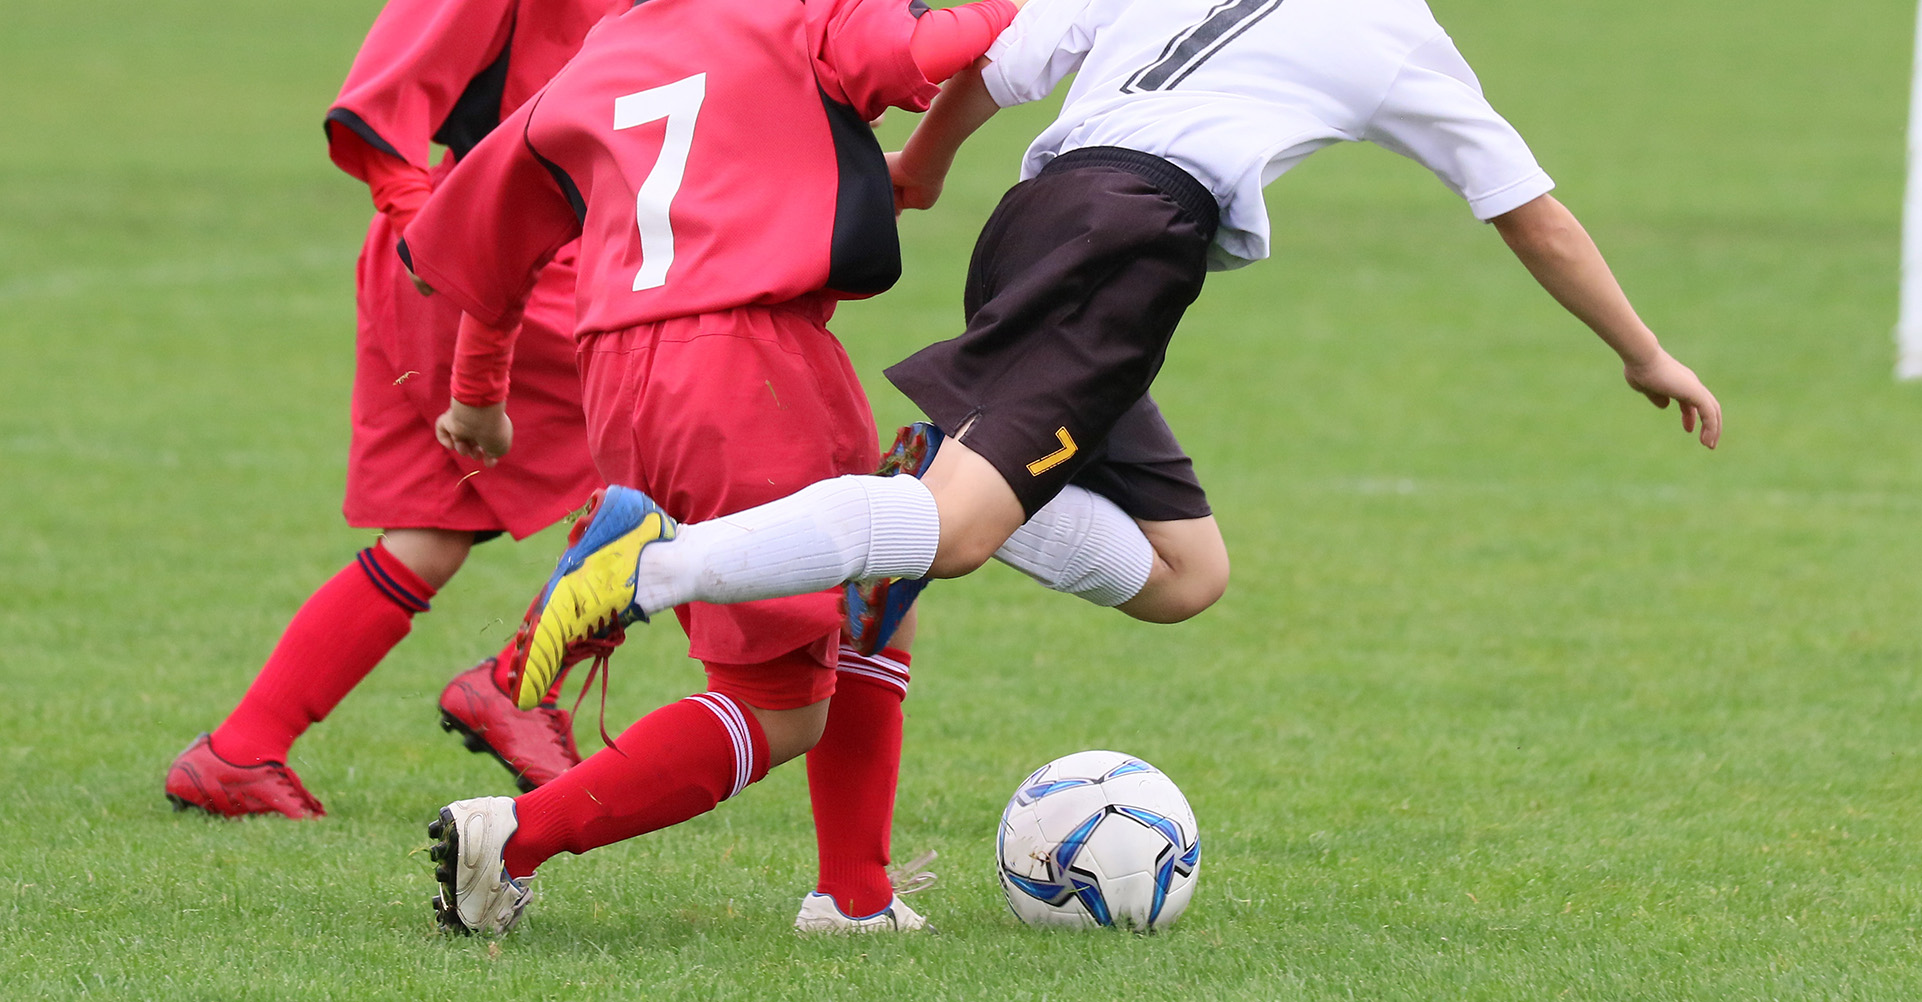 Sporting Accidents, Tackles, Sport Injuries, Compensation